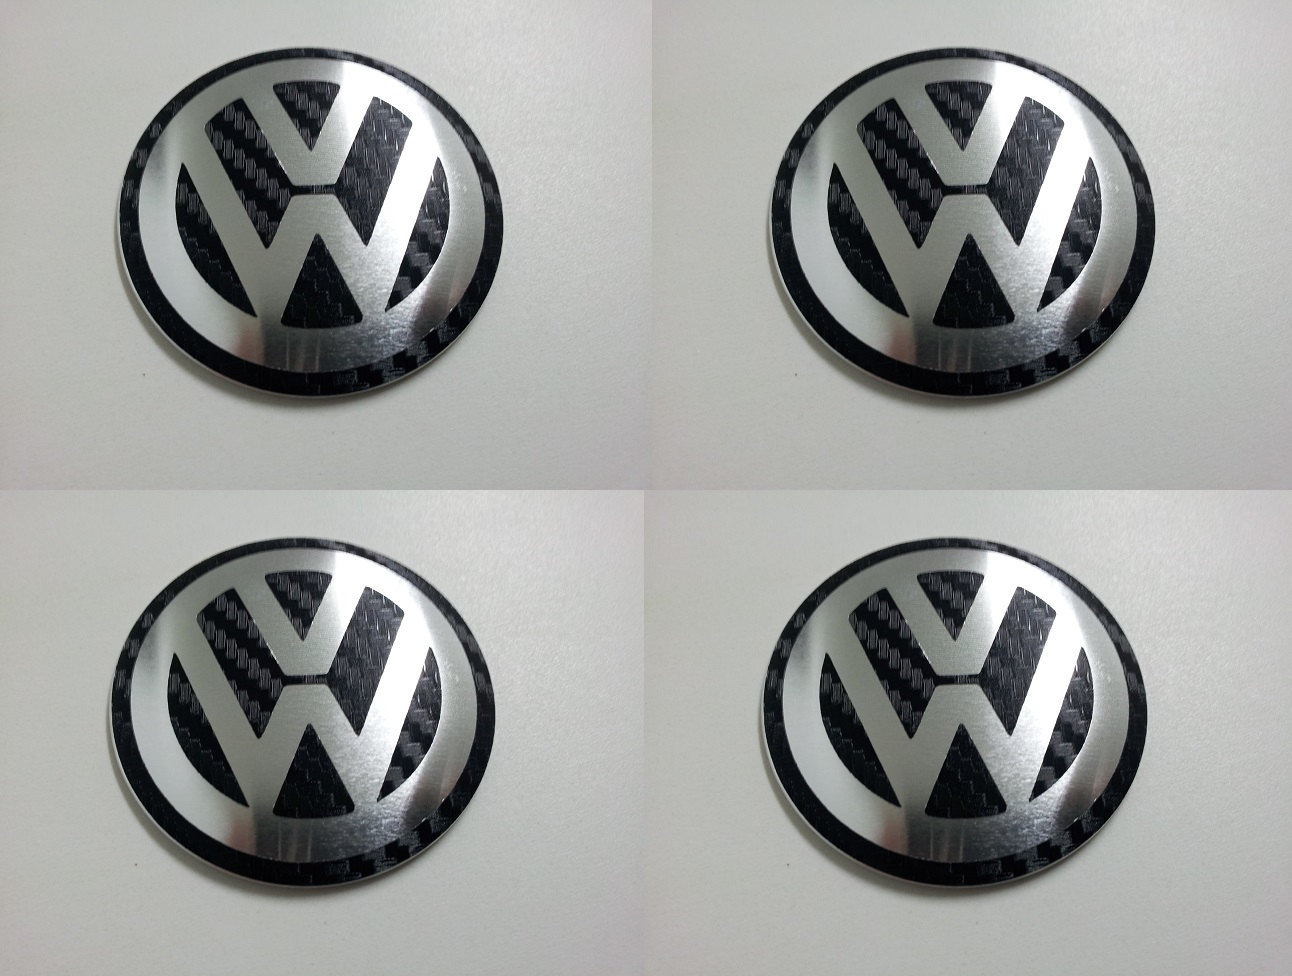 Primary image for Set of 4 - car wheel center cap stickers - VW Domed Black&Chrome Carbon